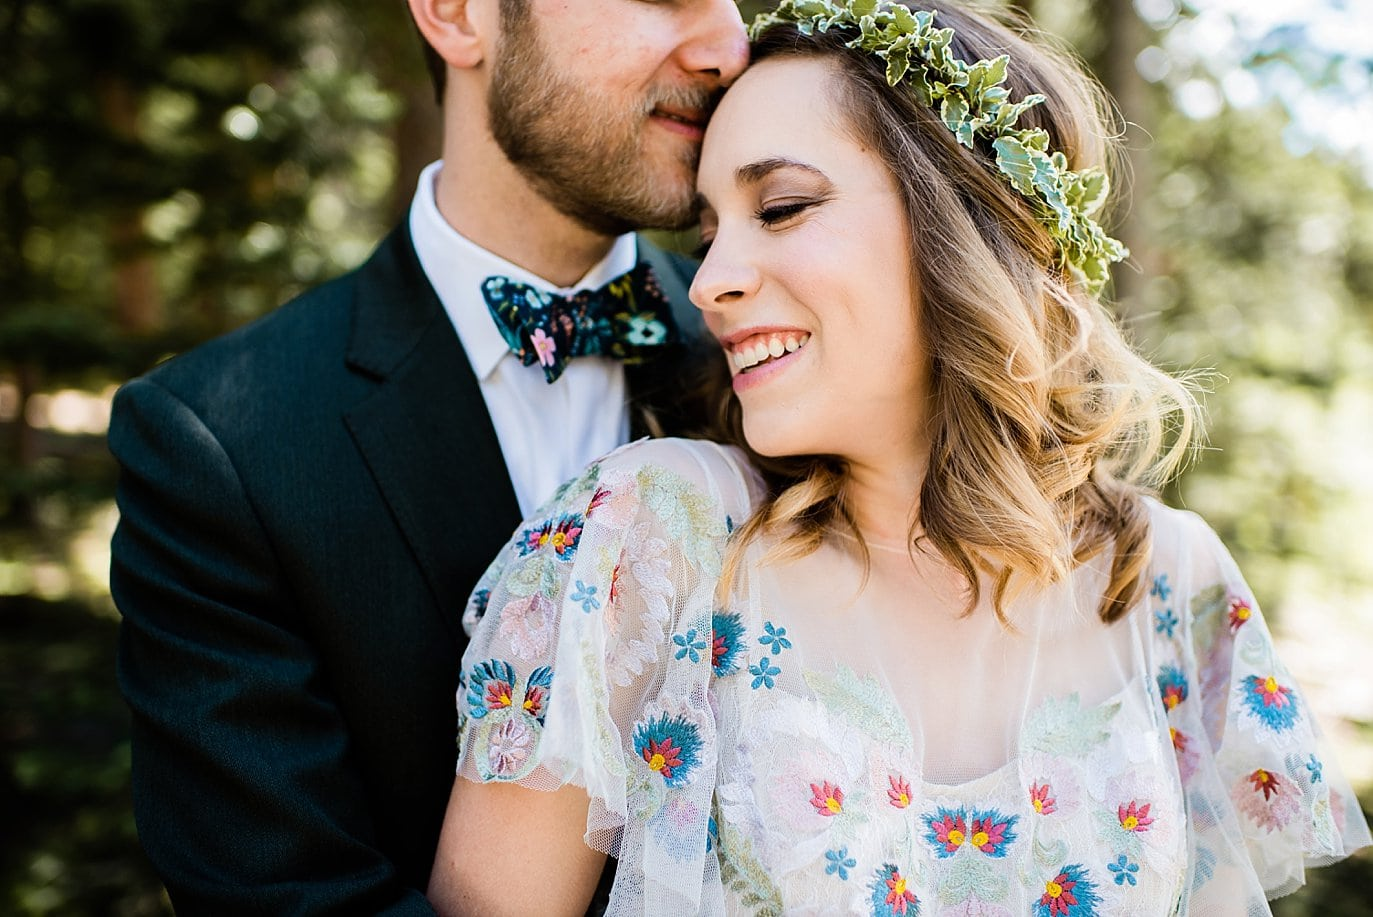 intimate portrait of bride and groom at Arapahoe Basin wedding by Frisco wedding photographer Jennie Crate